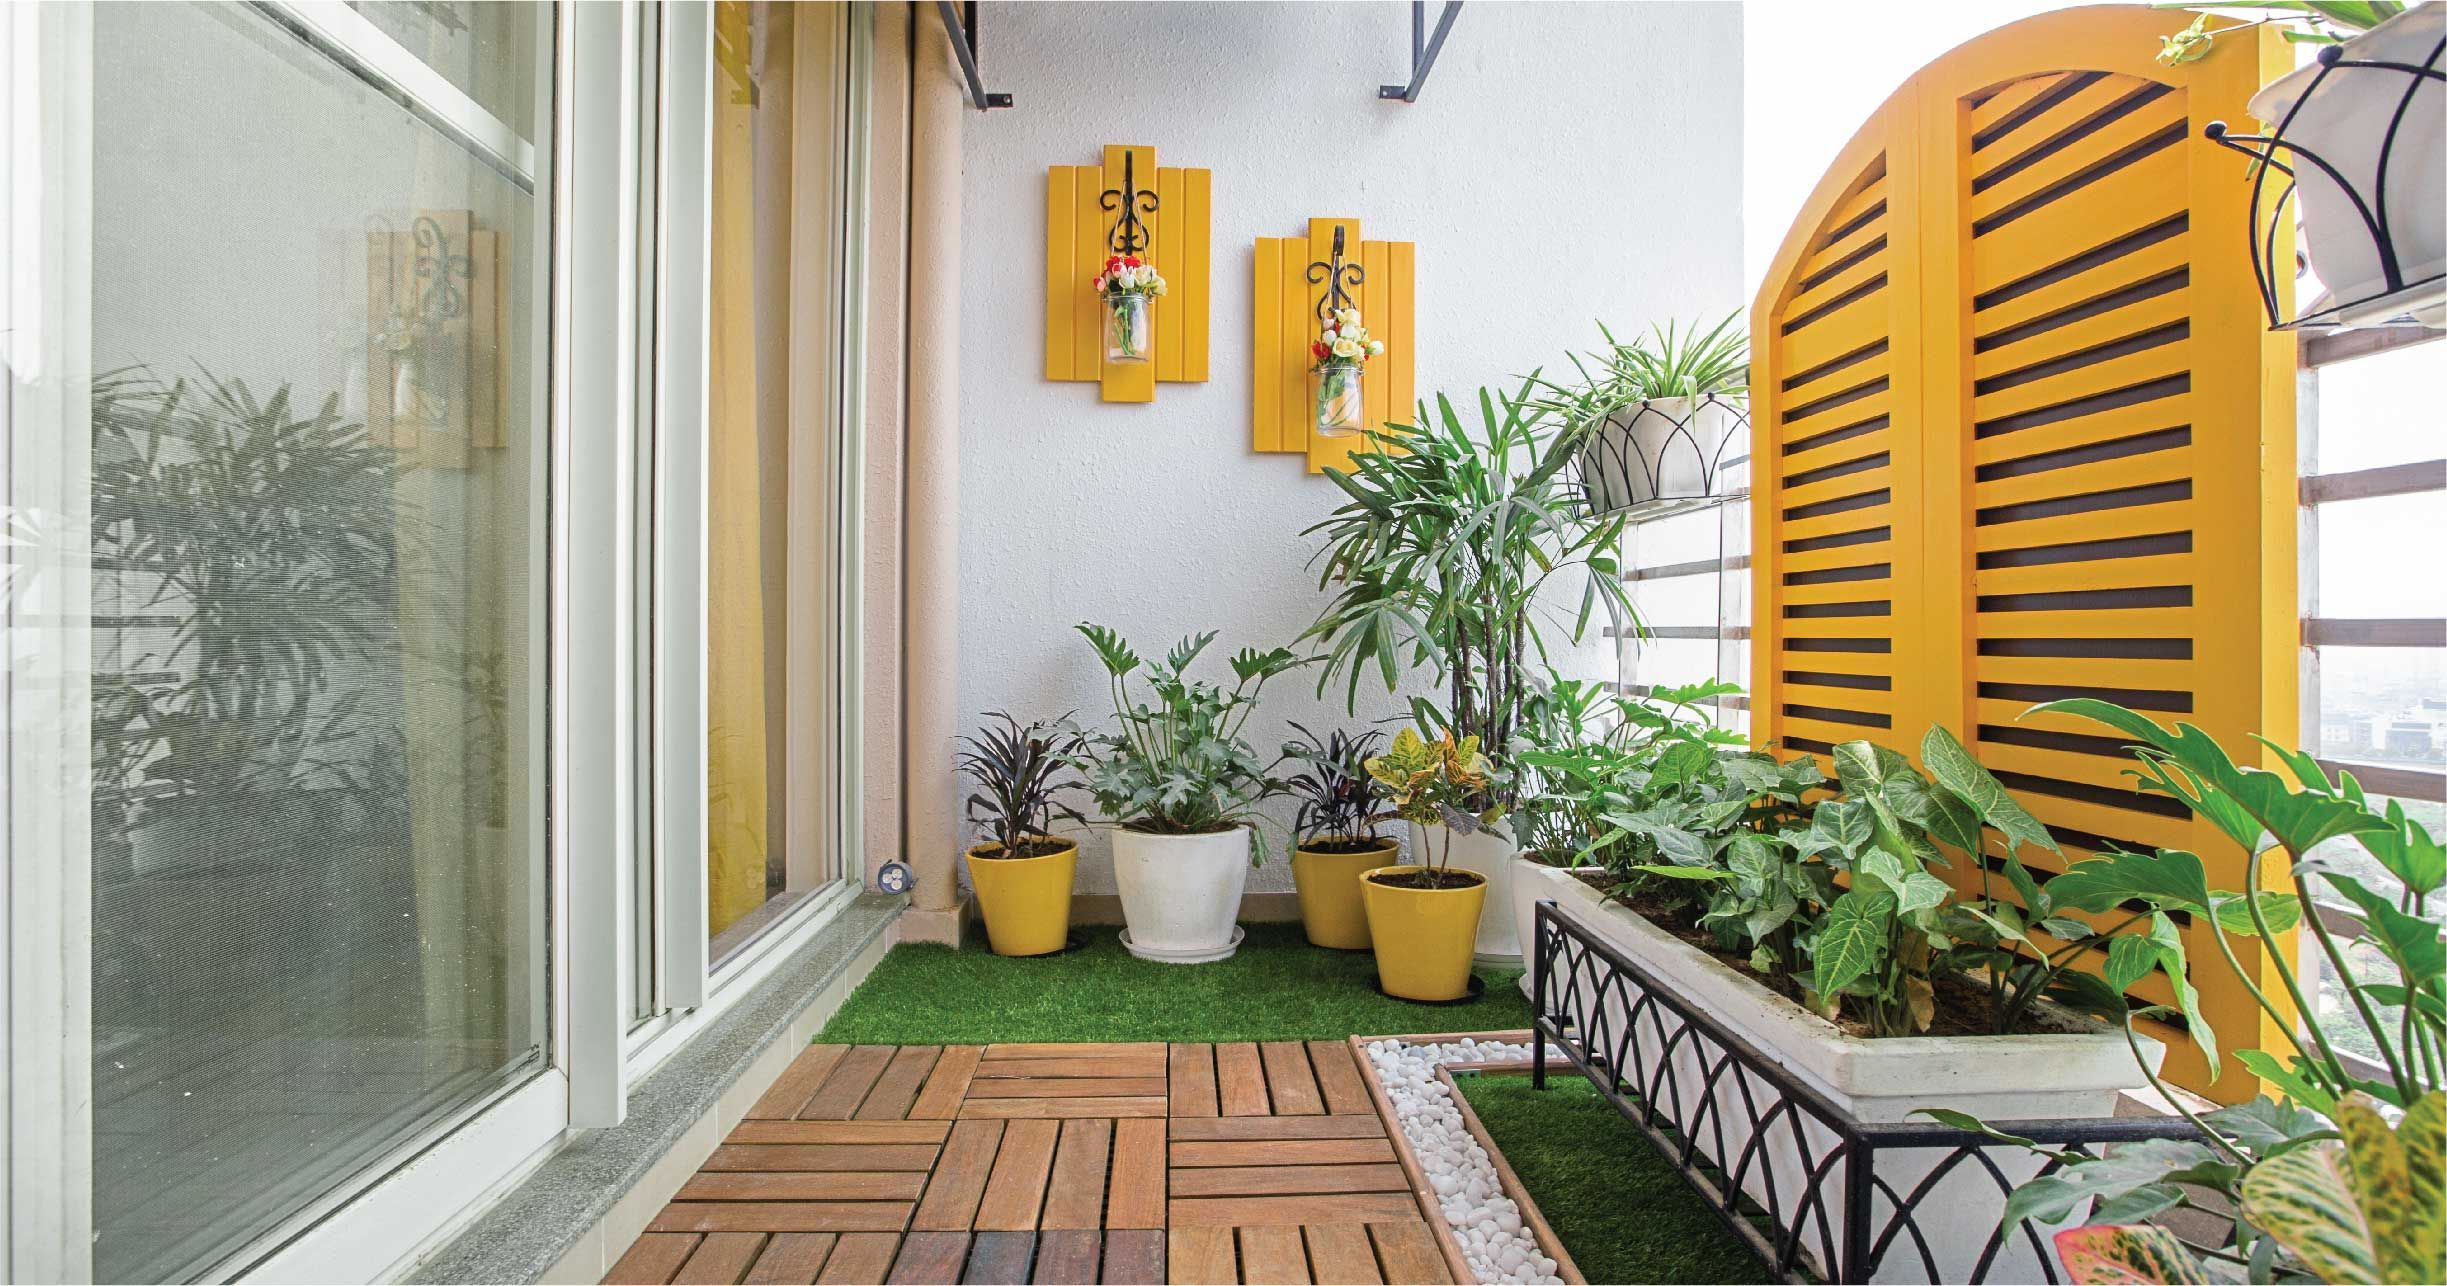 How to Set Up a Stunning Balcony That's Low on Maintenance